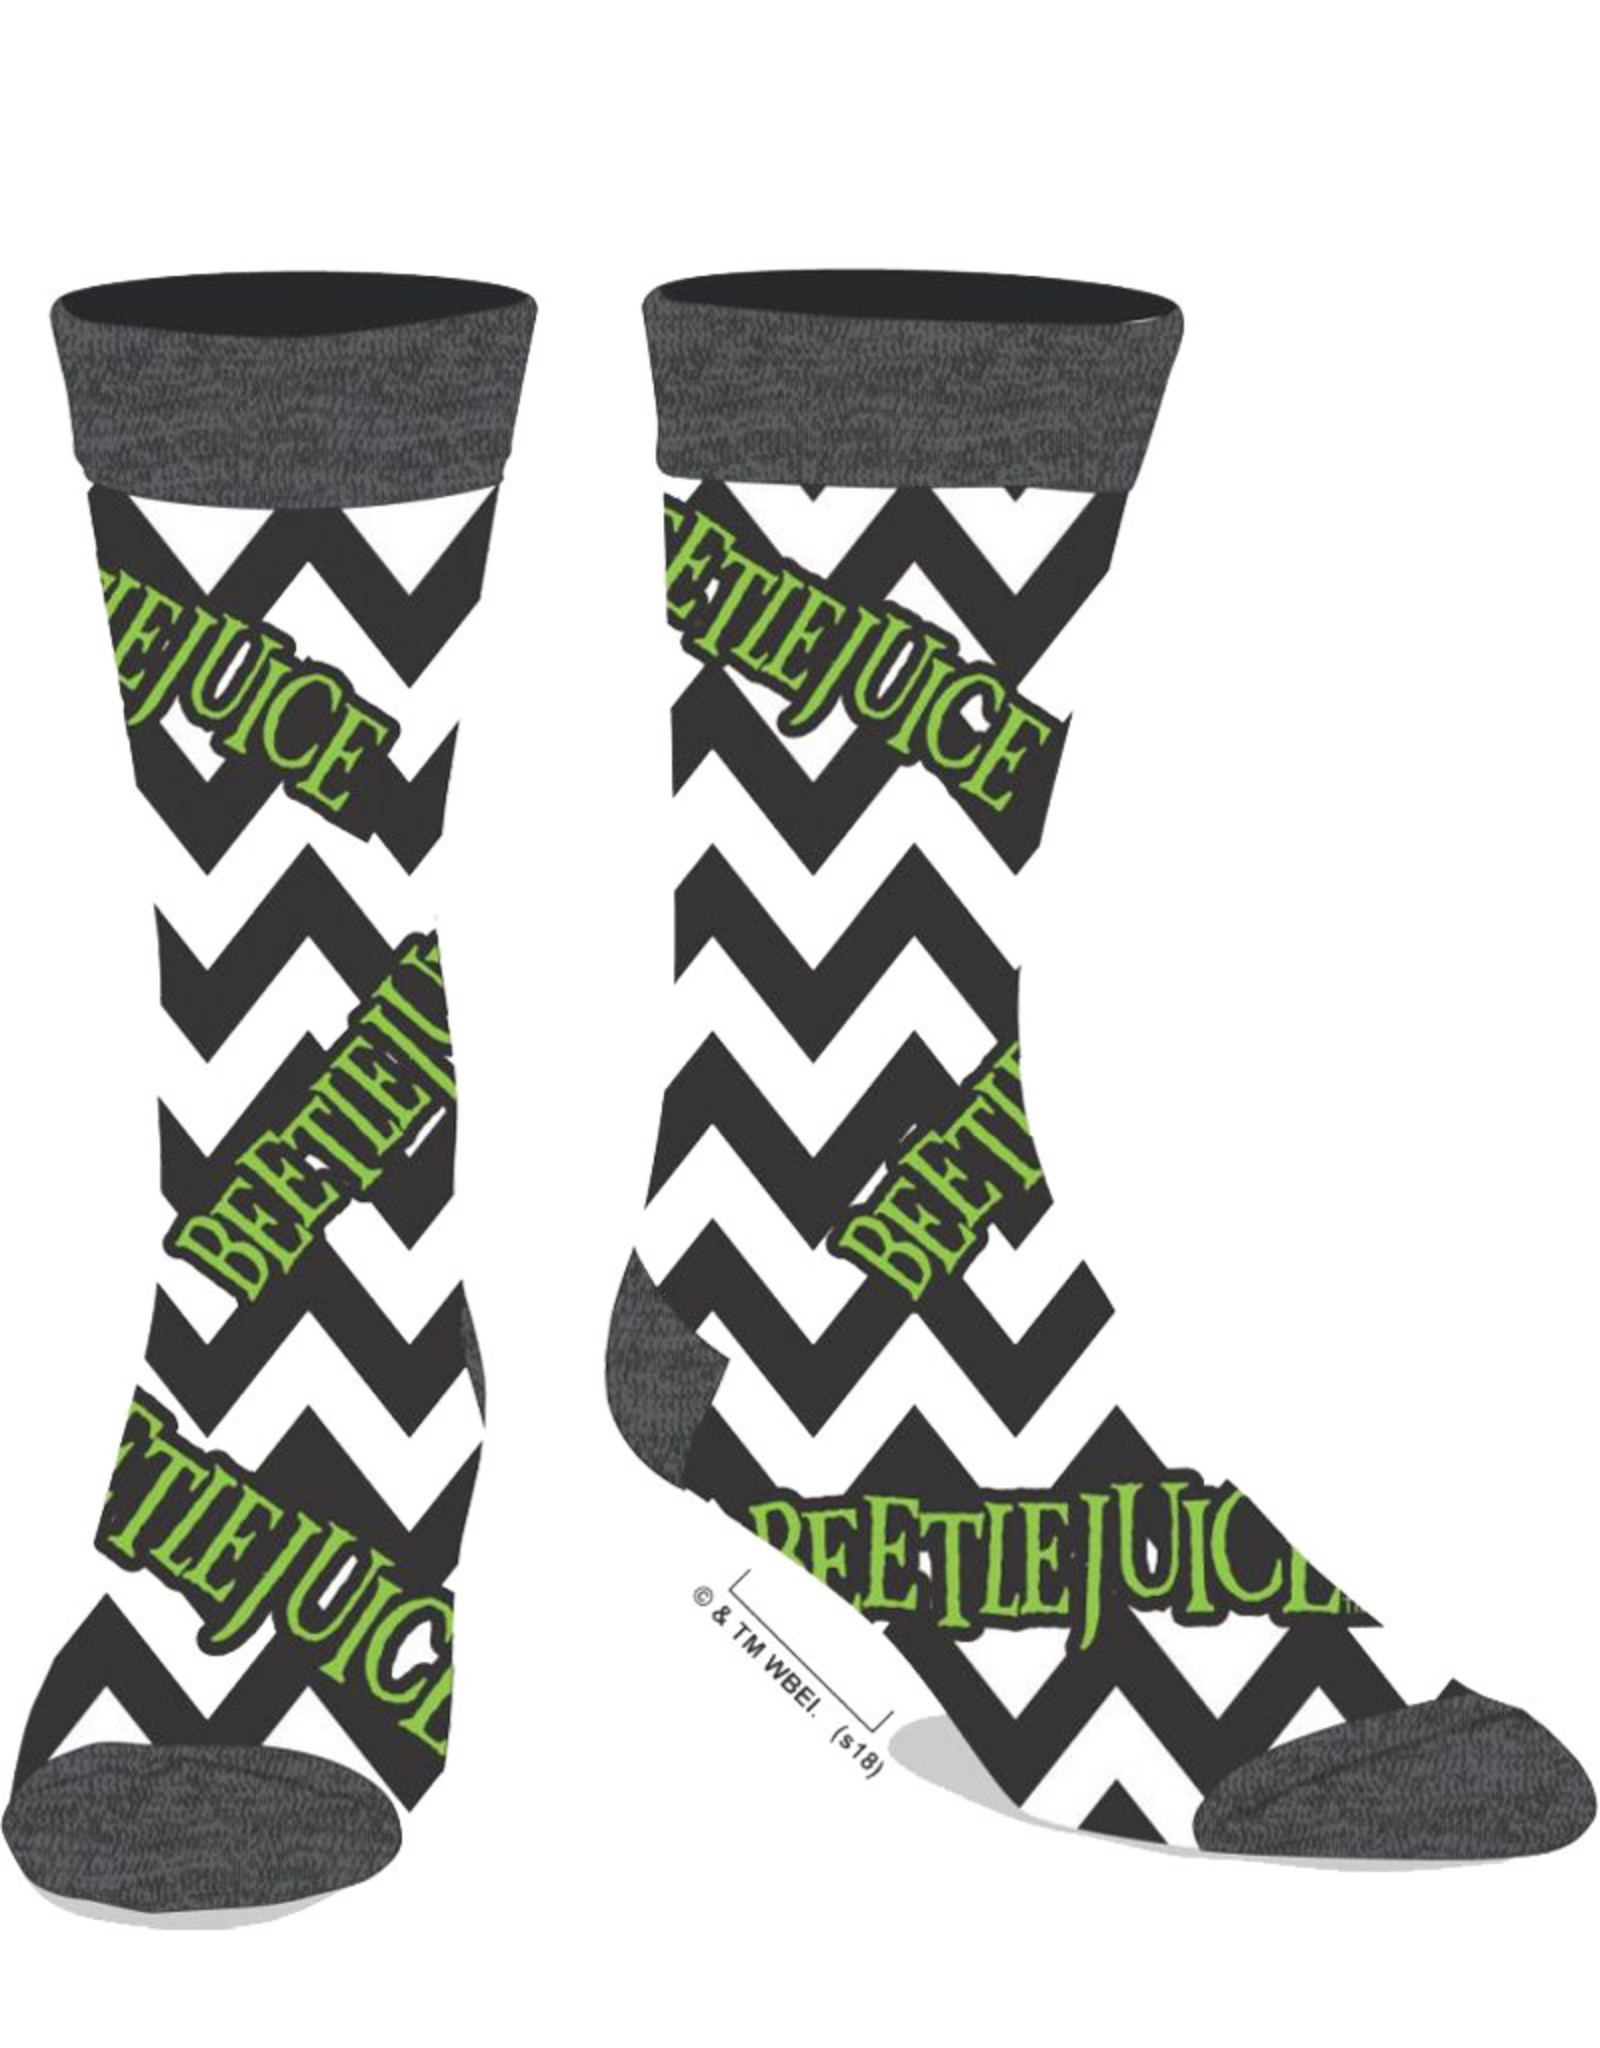 Beetlejuice ( Socks )